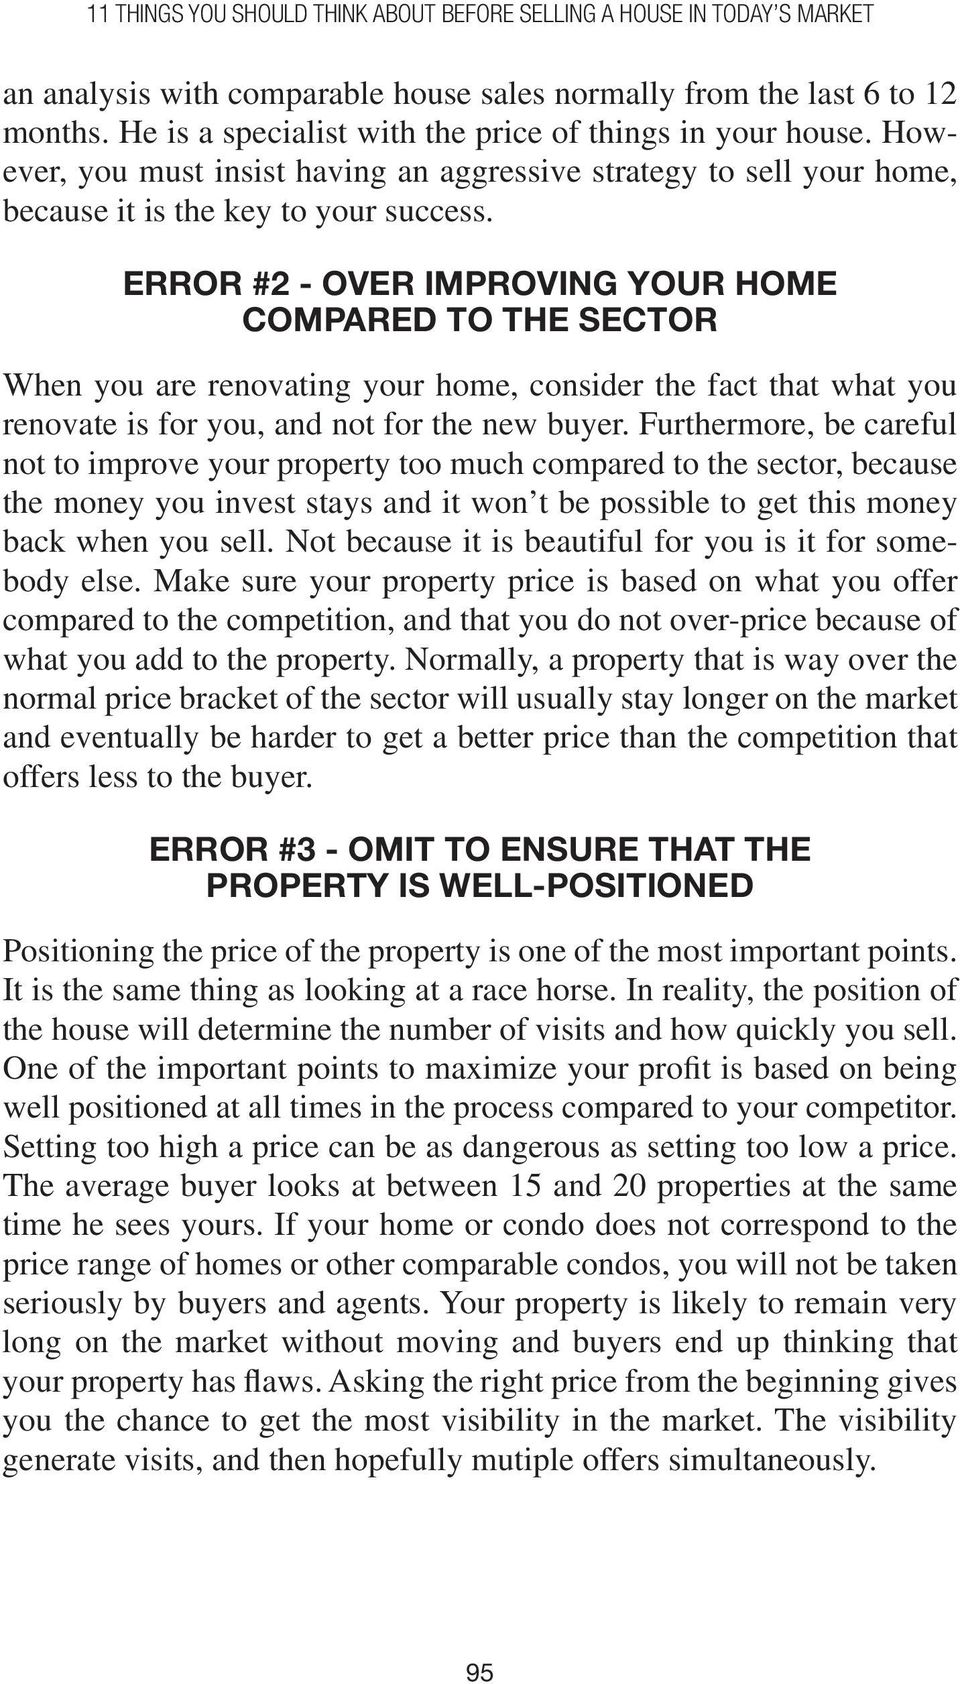 Error #2 - Over improving your home compared to the sector When you are renovating your home, consider the fact that what you renovate is for you, and not for the new buyer.